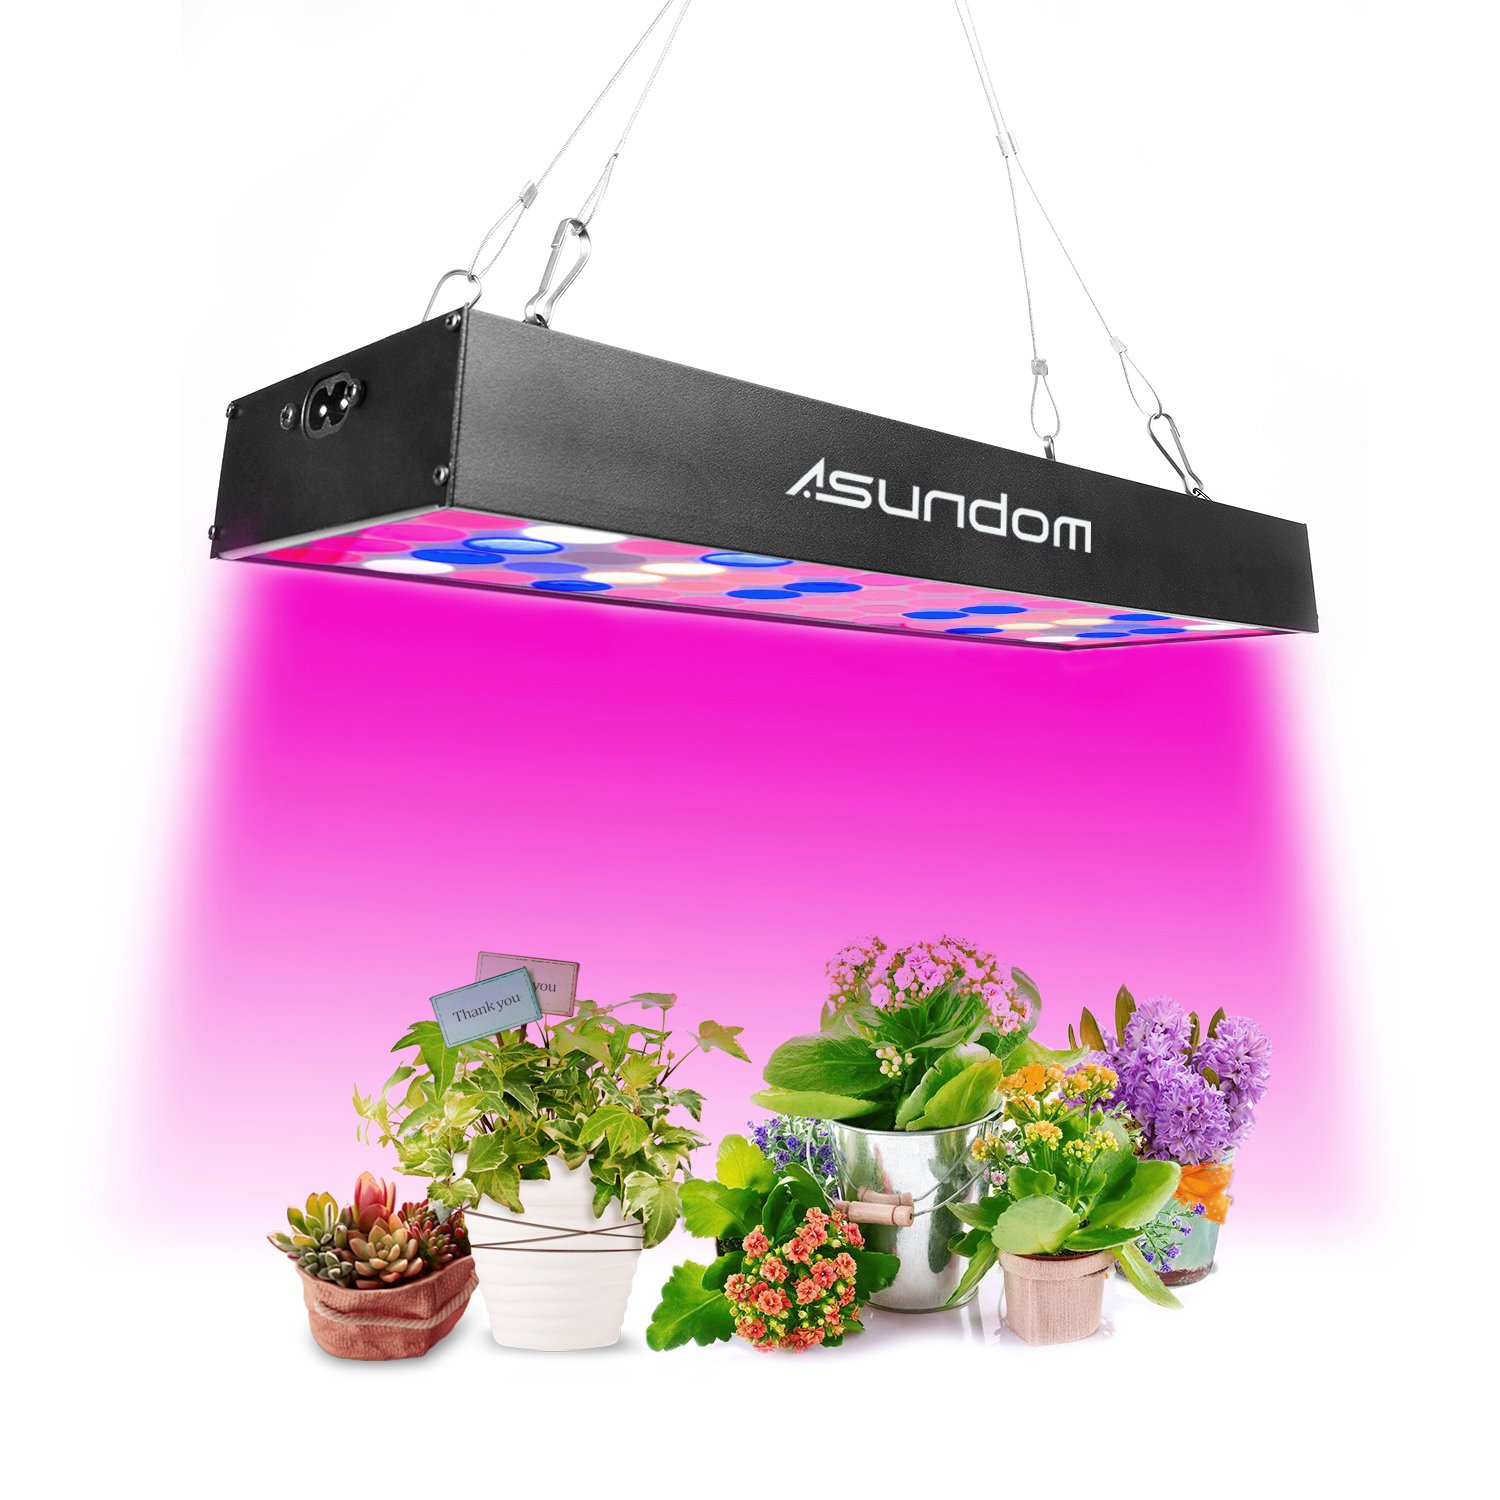 ASUNDOM Grow Light, Panel Full Spectrum UV & IR 36W Grow Lights Aluminum Made with Daisy Chain for Hydroponic Indoor Plants Seeding Growing, Germination & Flowering. LZH